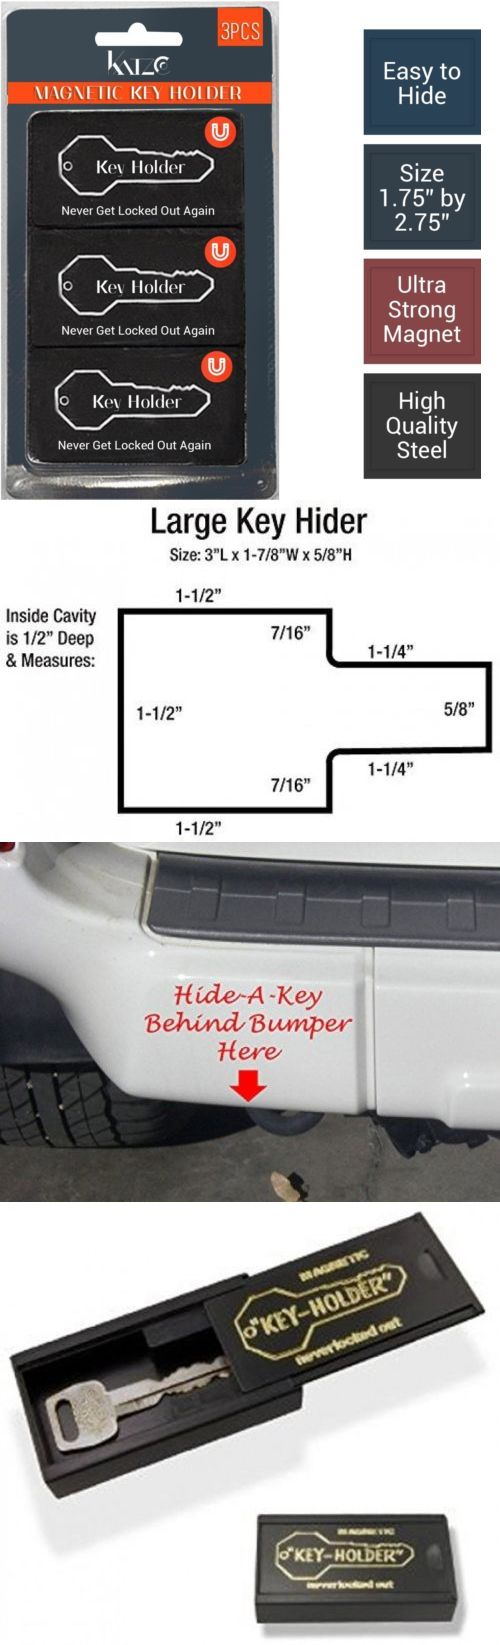 Hide-a-Keys 115945: Magnetic Hide A Key Holder, Fits 3? Inches Long Keys, Extra Super Strong Good -> BUY IT NOW ONLY: $32.17 on eBay!